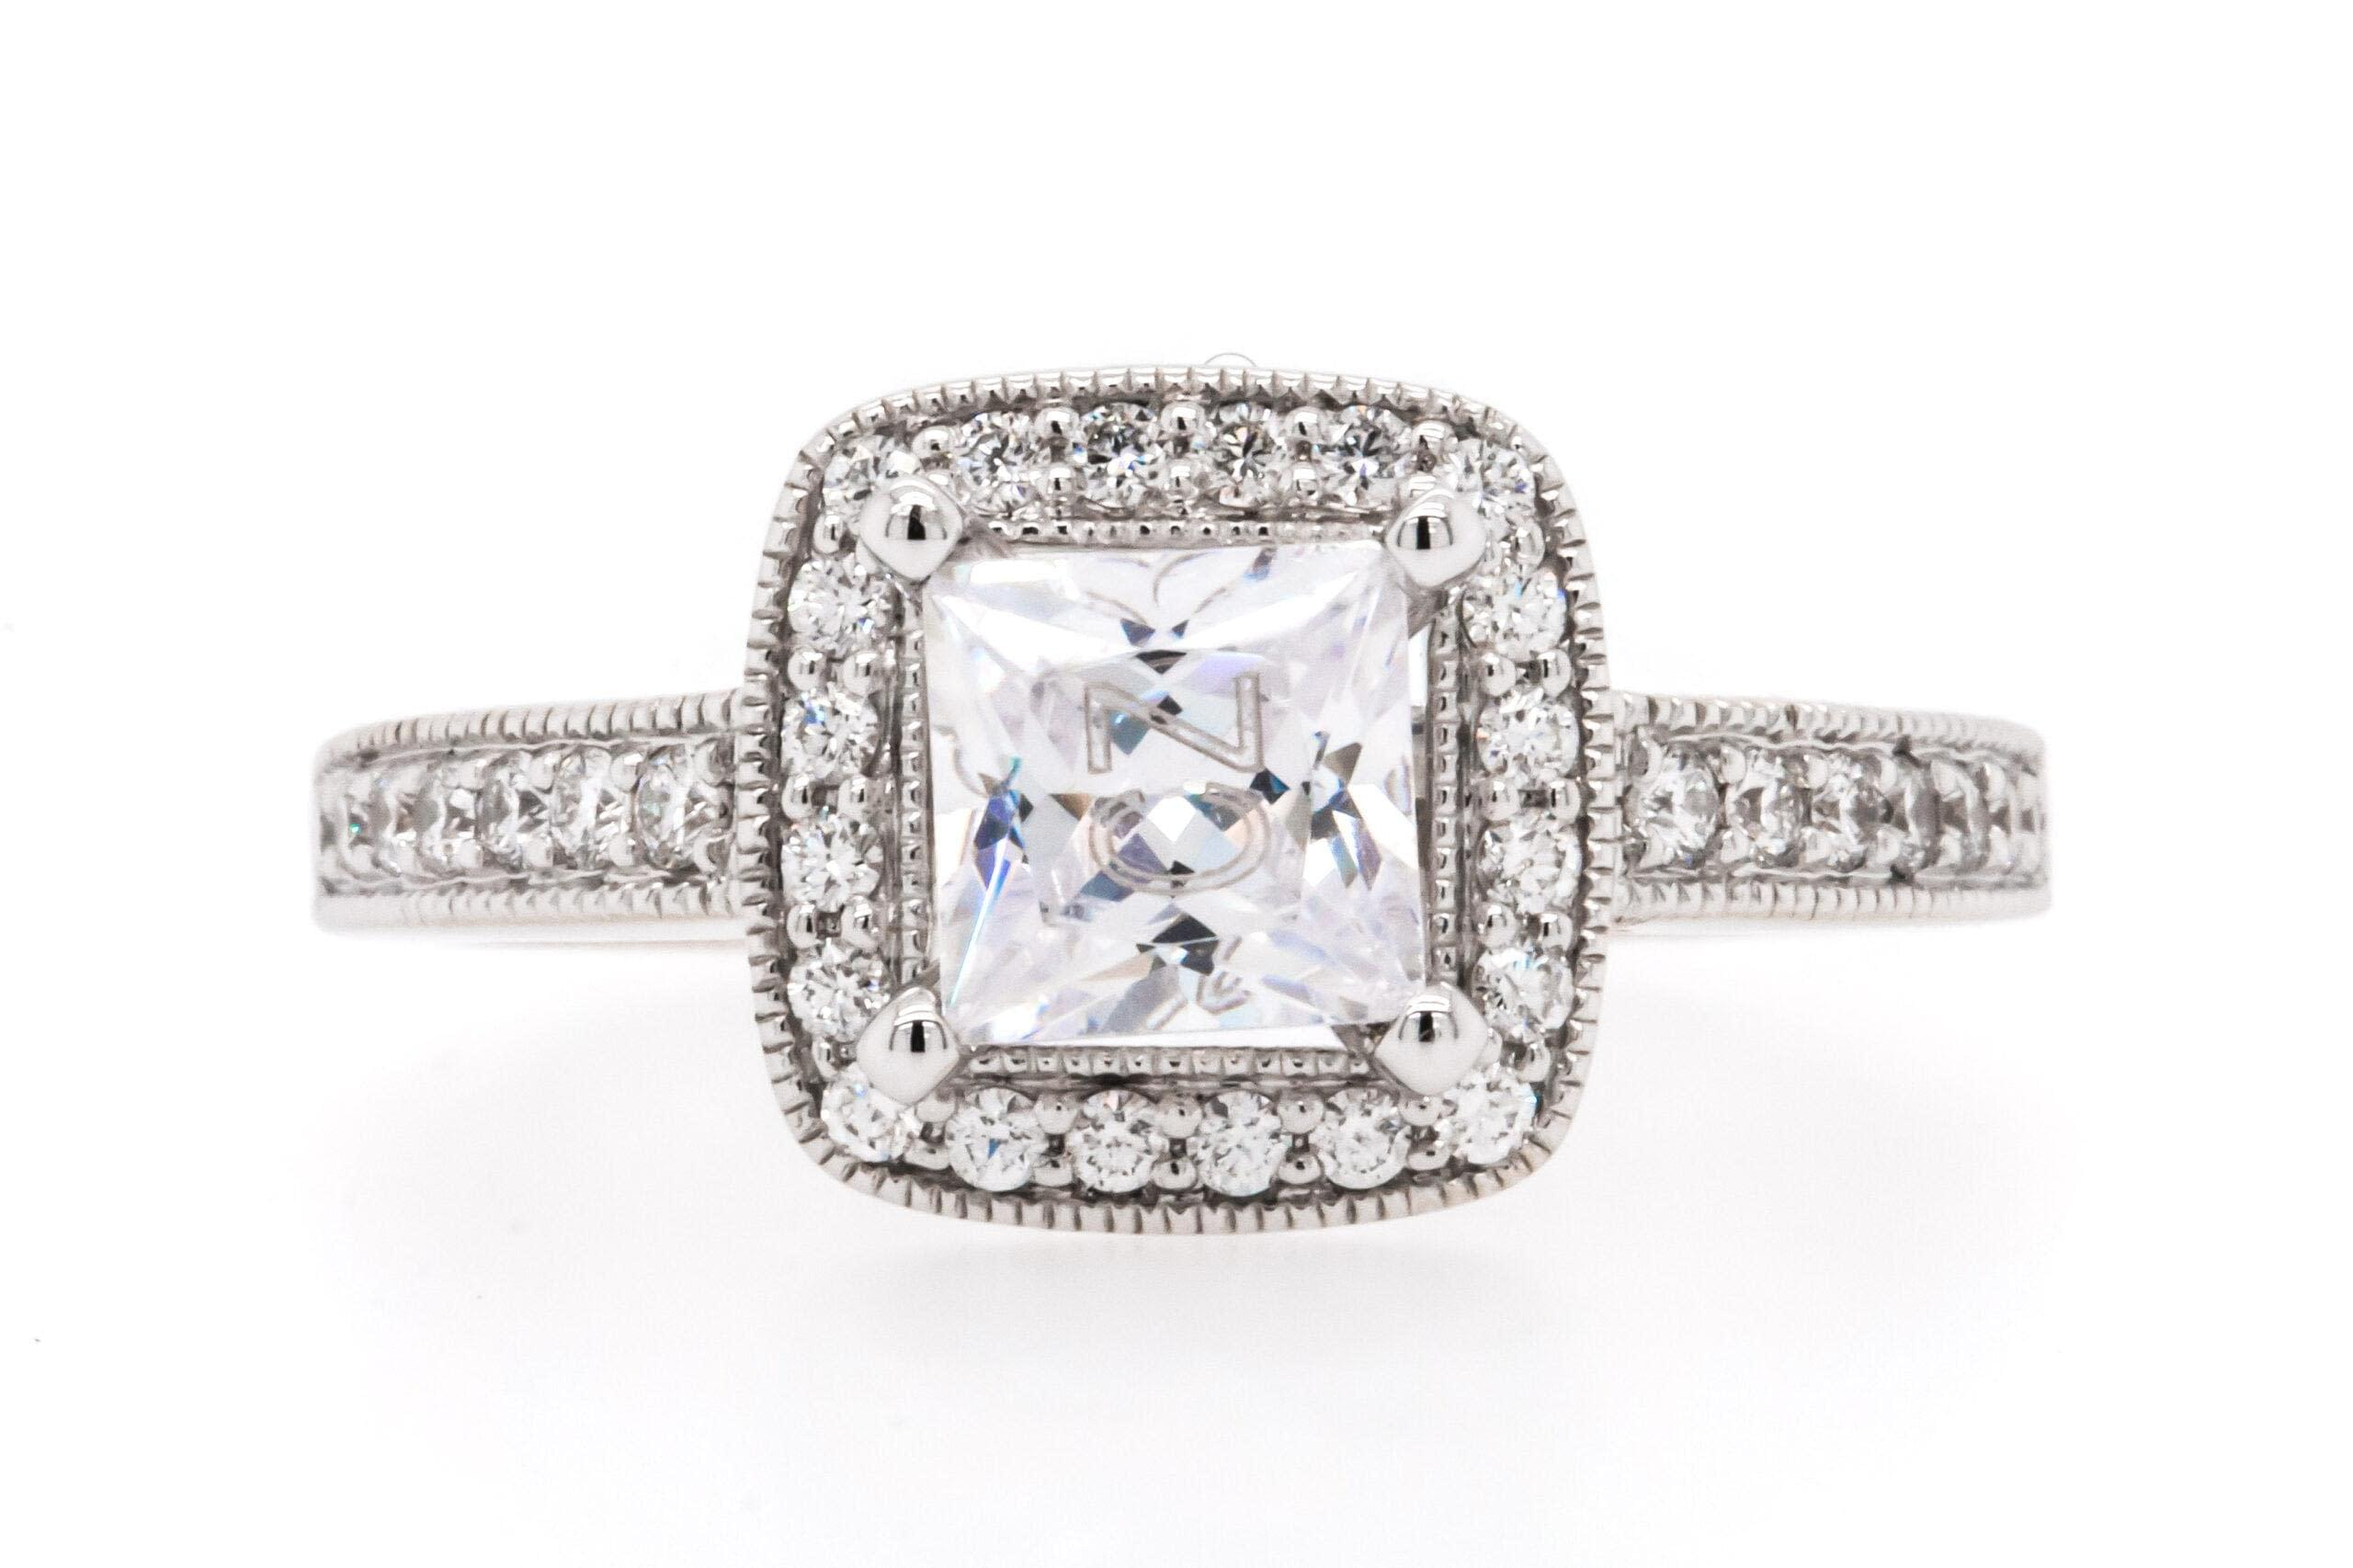 14 Karat White Gold Halo Engagement Ring with a Square Cut Diamond in the Center